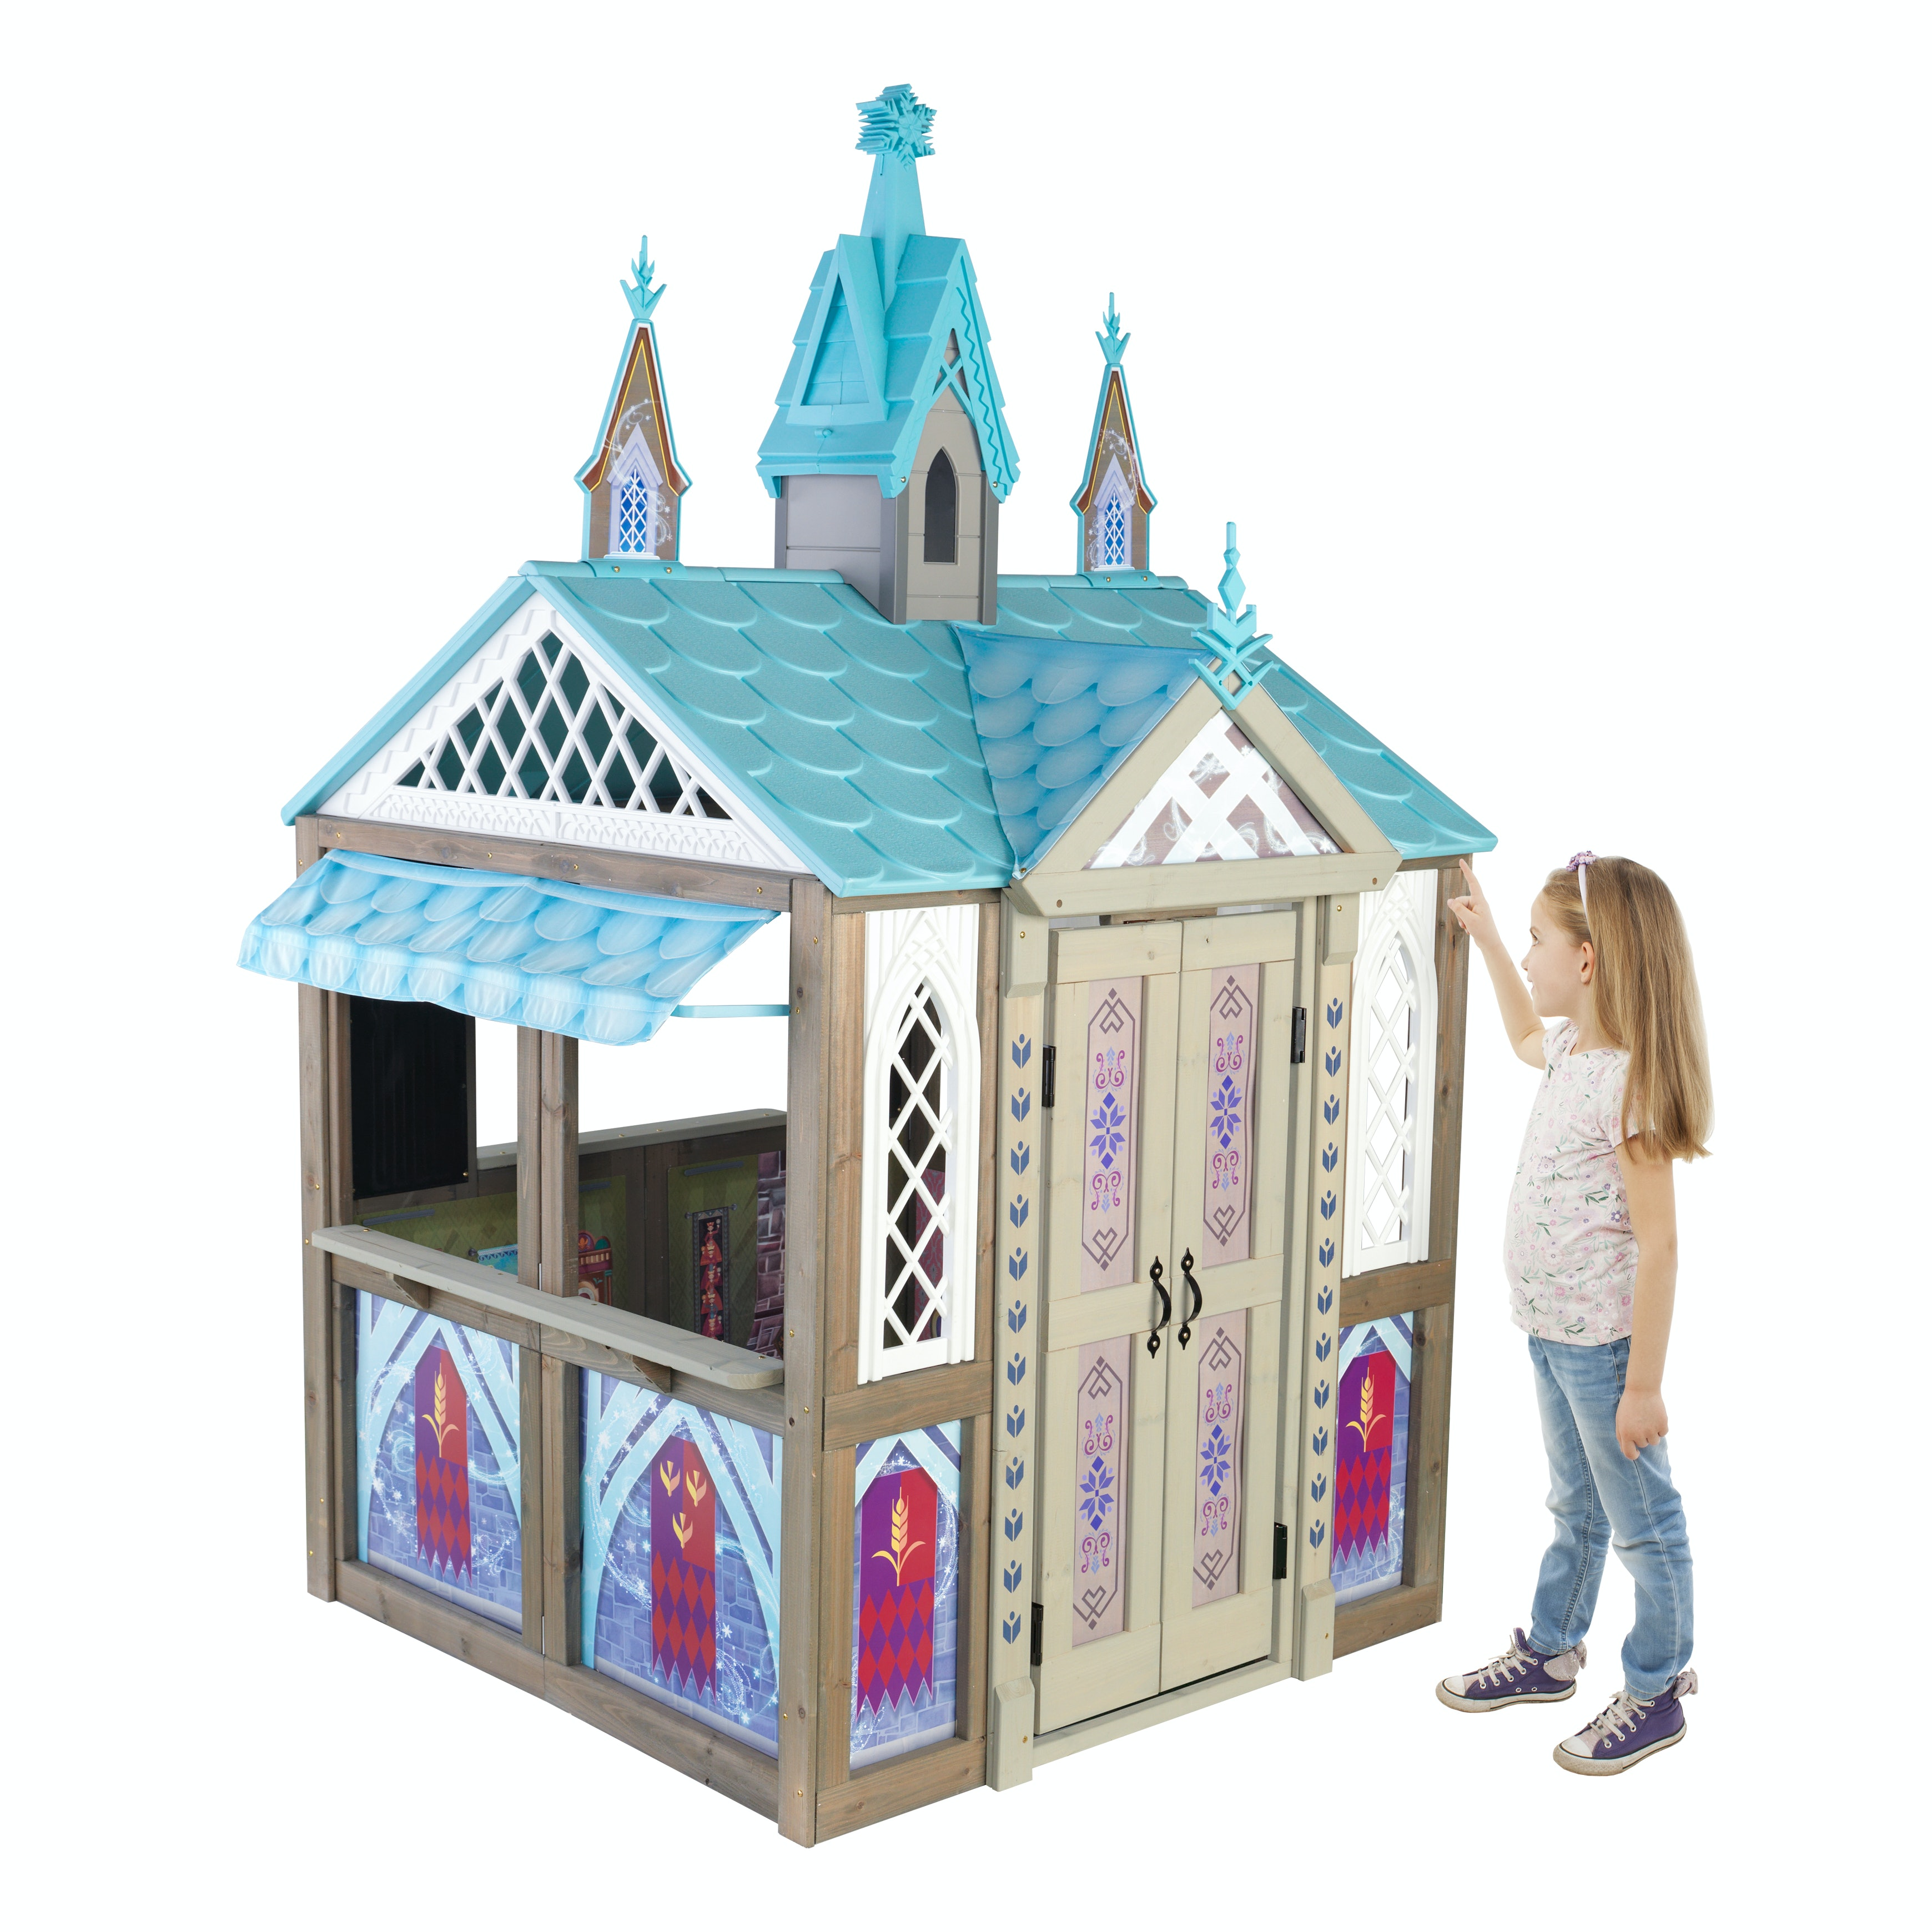 Frozen 2 Arendelle Playhouse At Costco